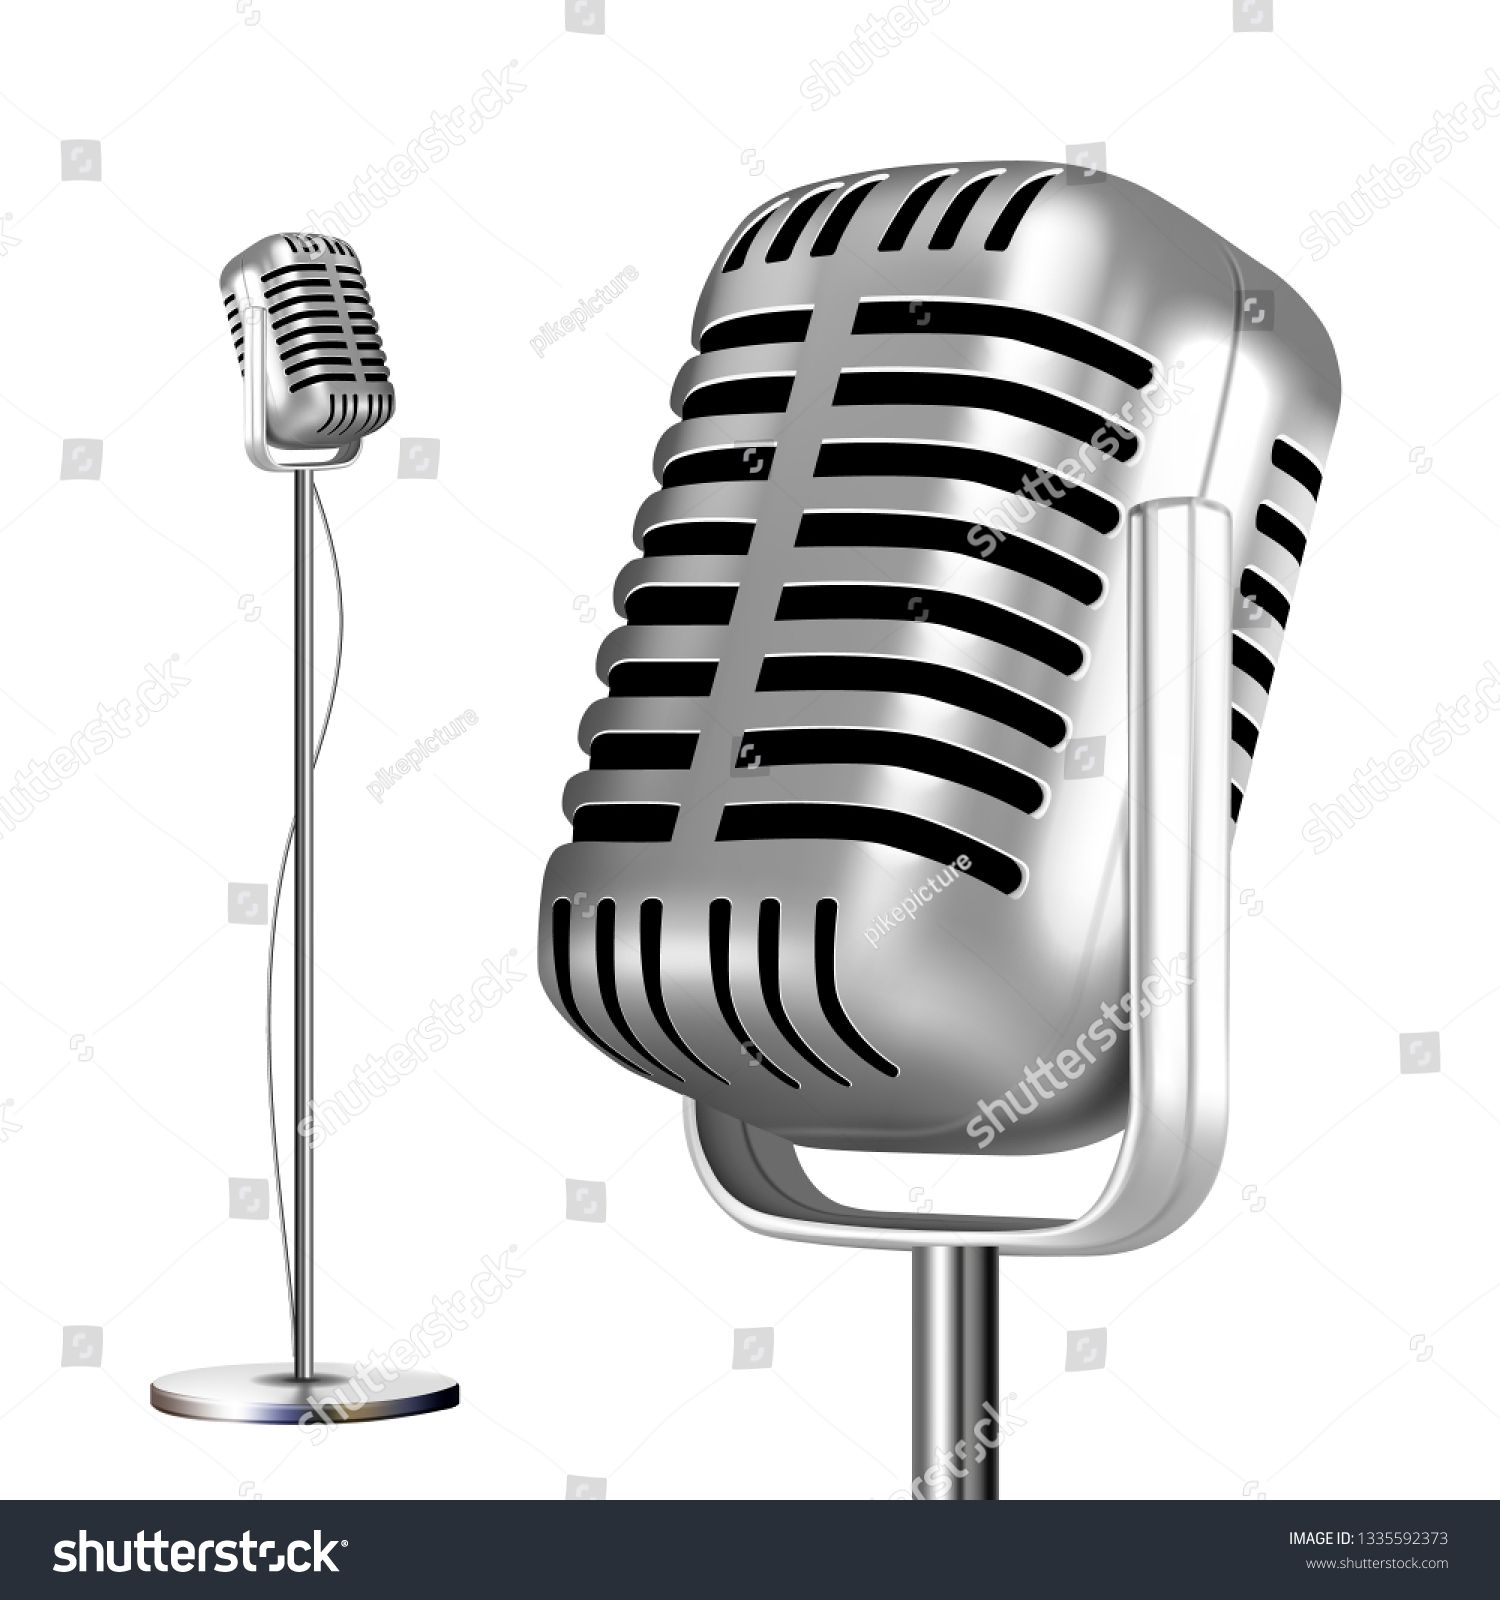 Retro Metal Microphone With Stand Vector Chrome Music Icon Vintage Concert Audio Communication Illustration Spon With Images Social Media Design Graphics Retro Metal